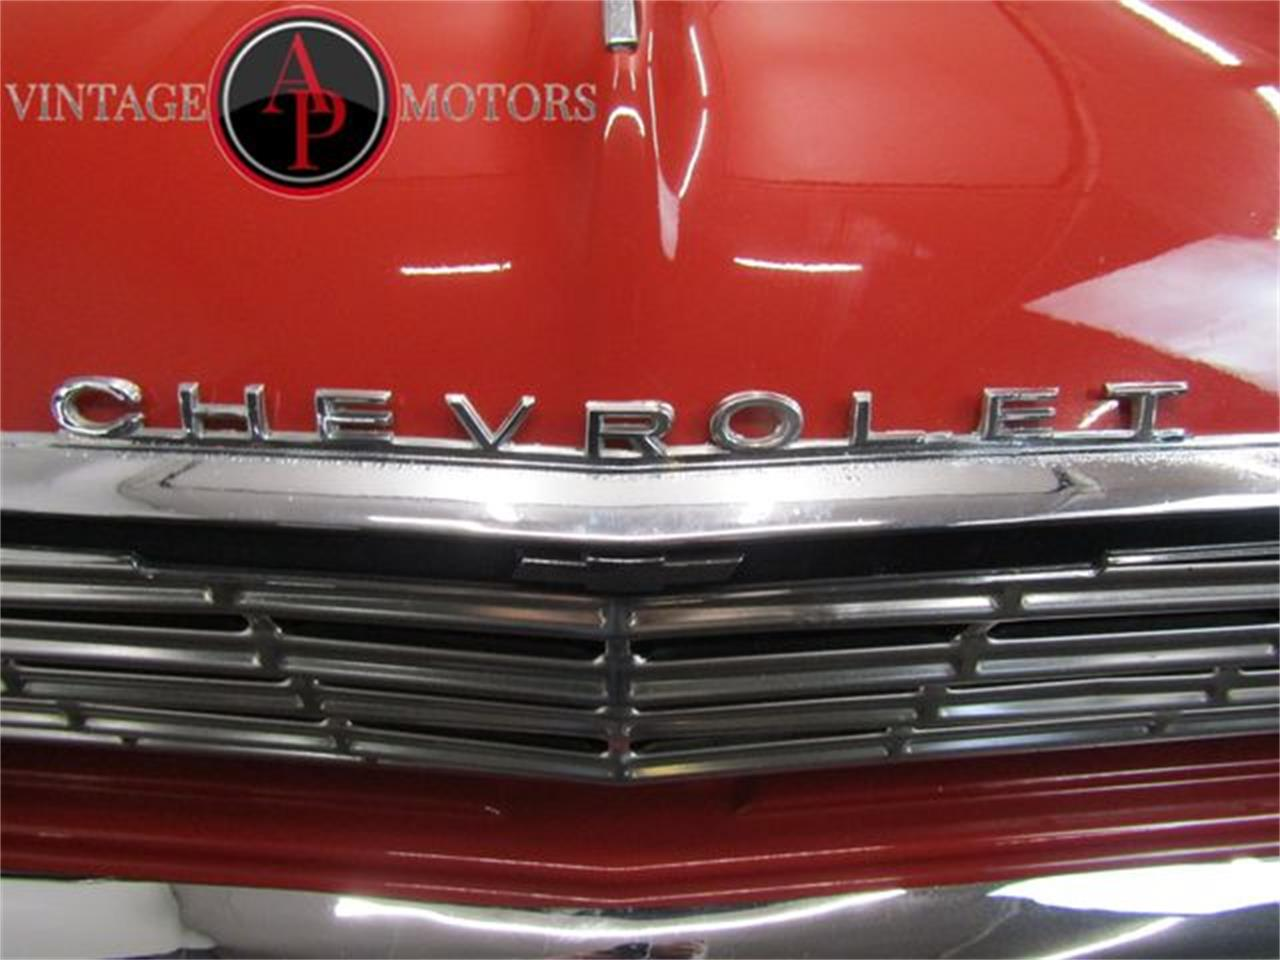 Large Picture of '63 Chevrolet Nova - $24,900.00 Offered by AP Vintage Motors - PX7S